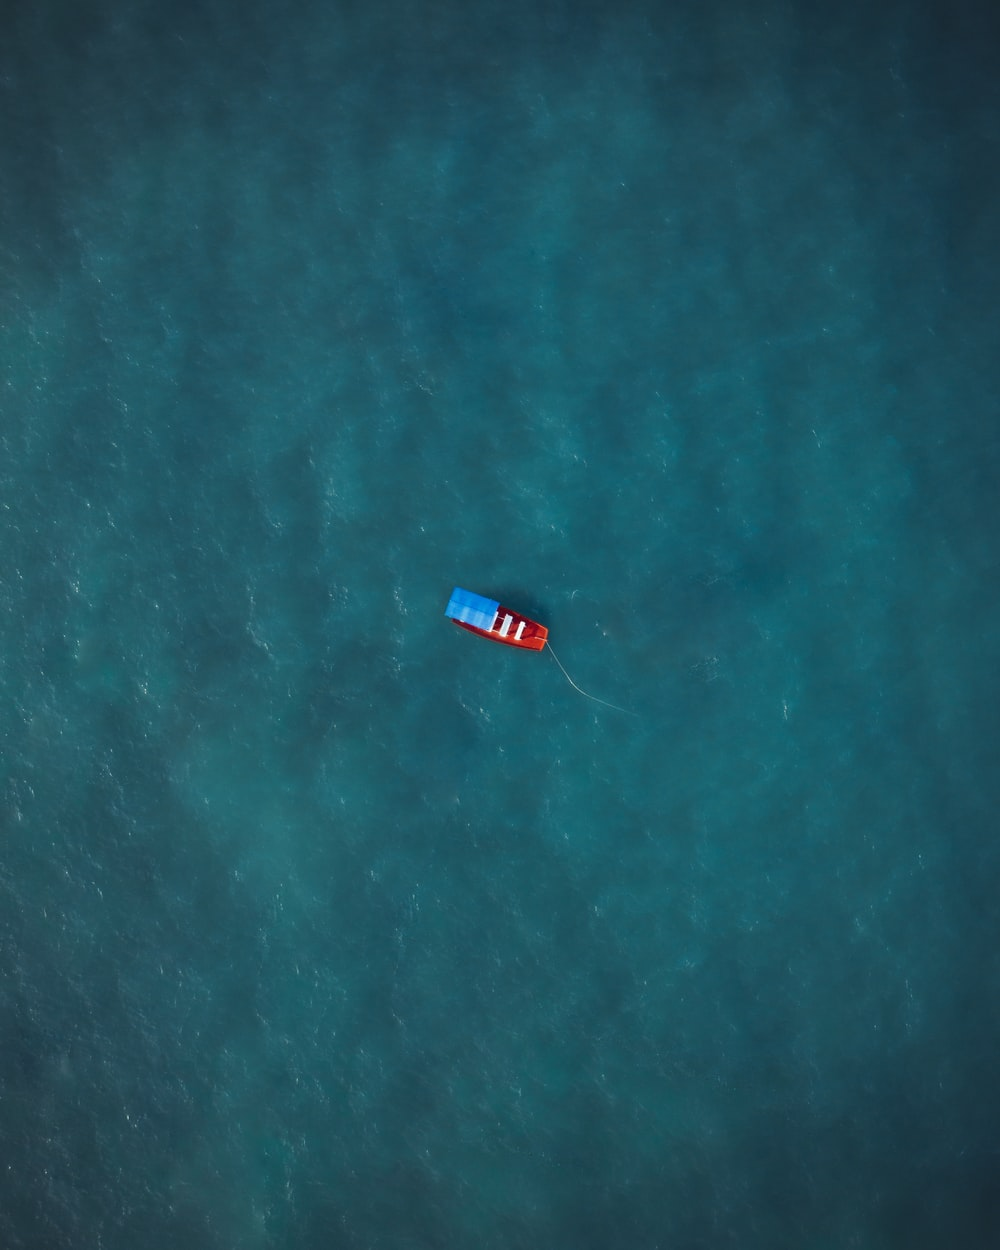 red boat on body of water during daytime